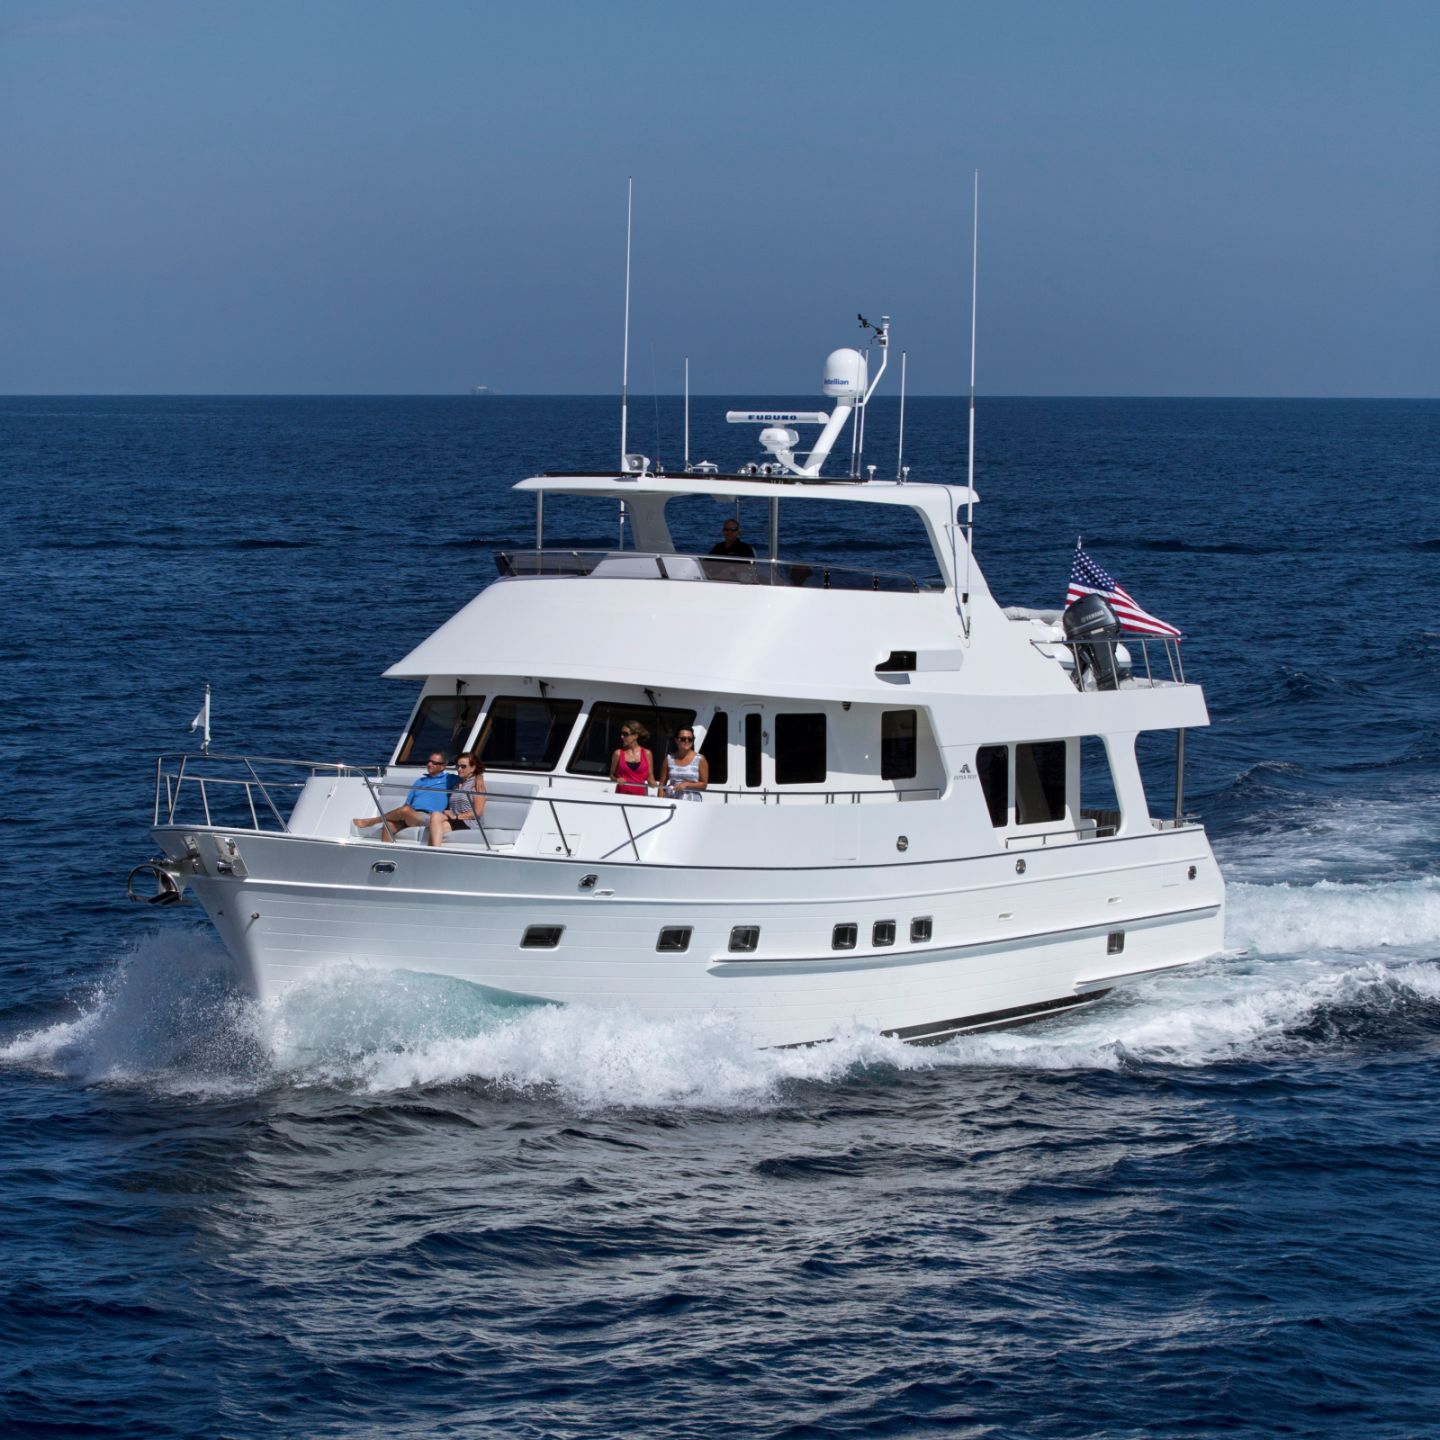 360 VR Virtual Tours of the Outer Reef 580 Motoryacht – VRCLOUD